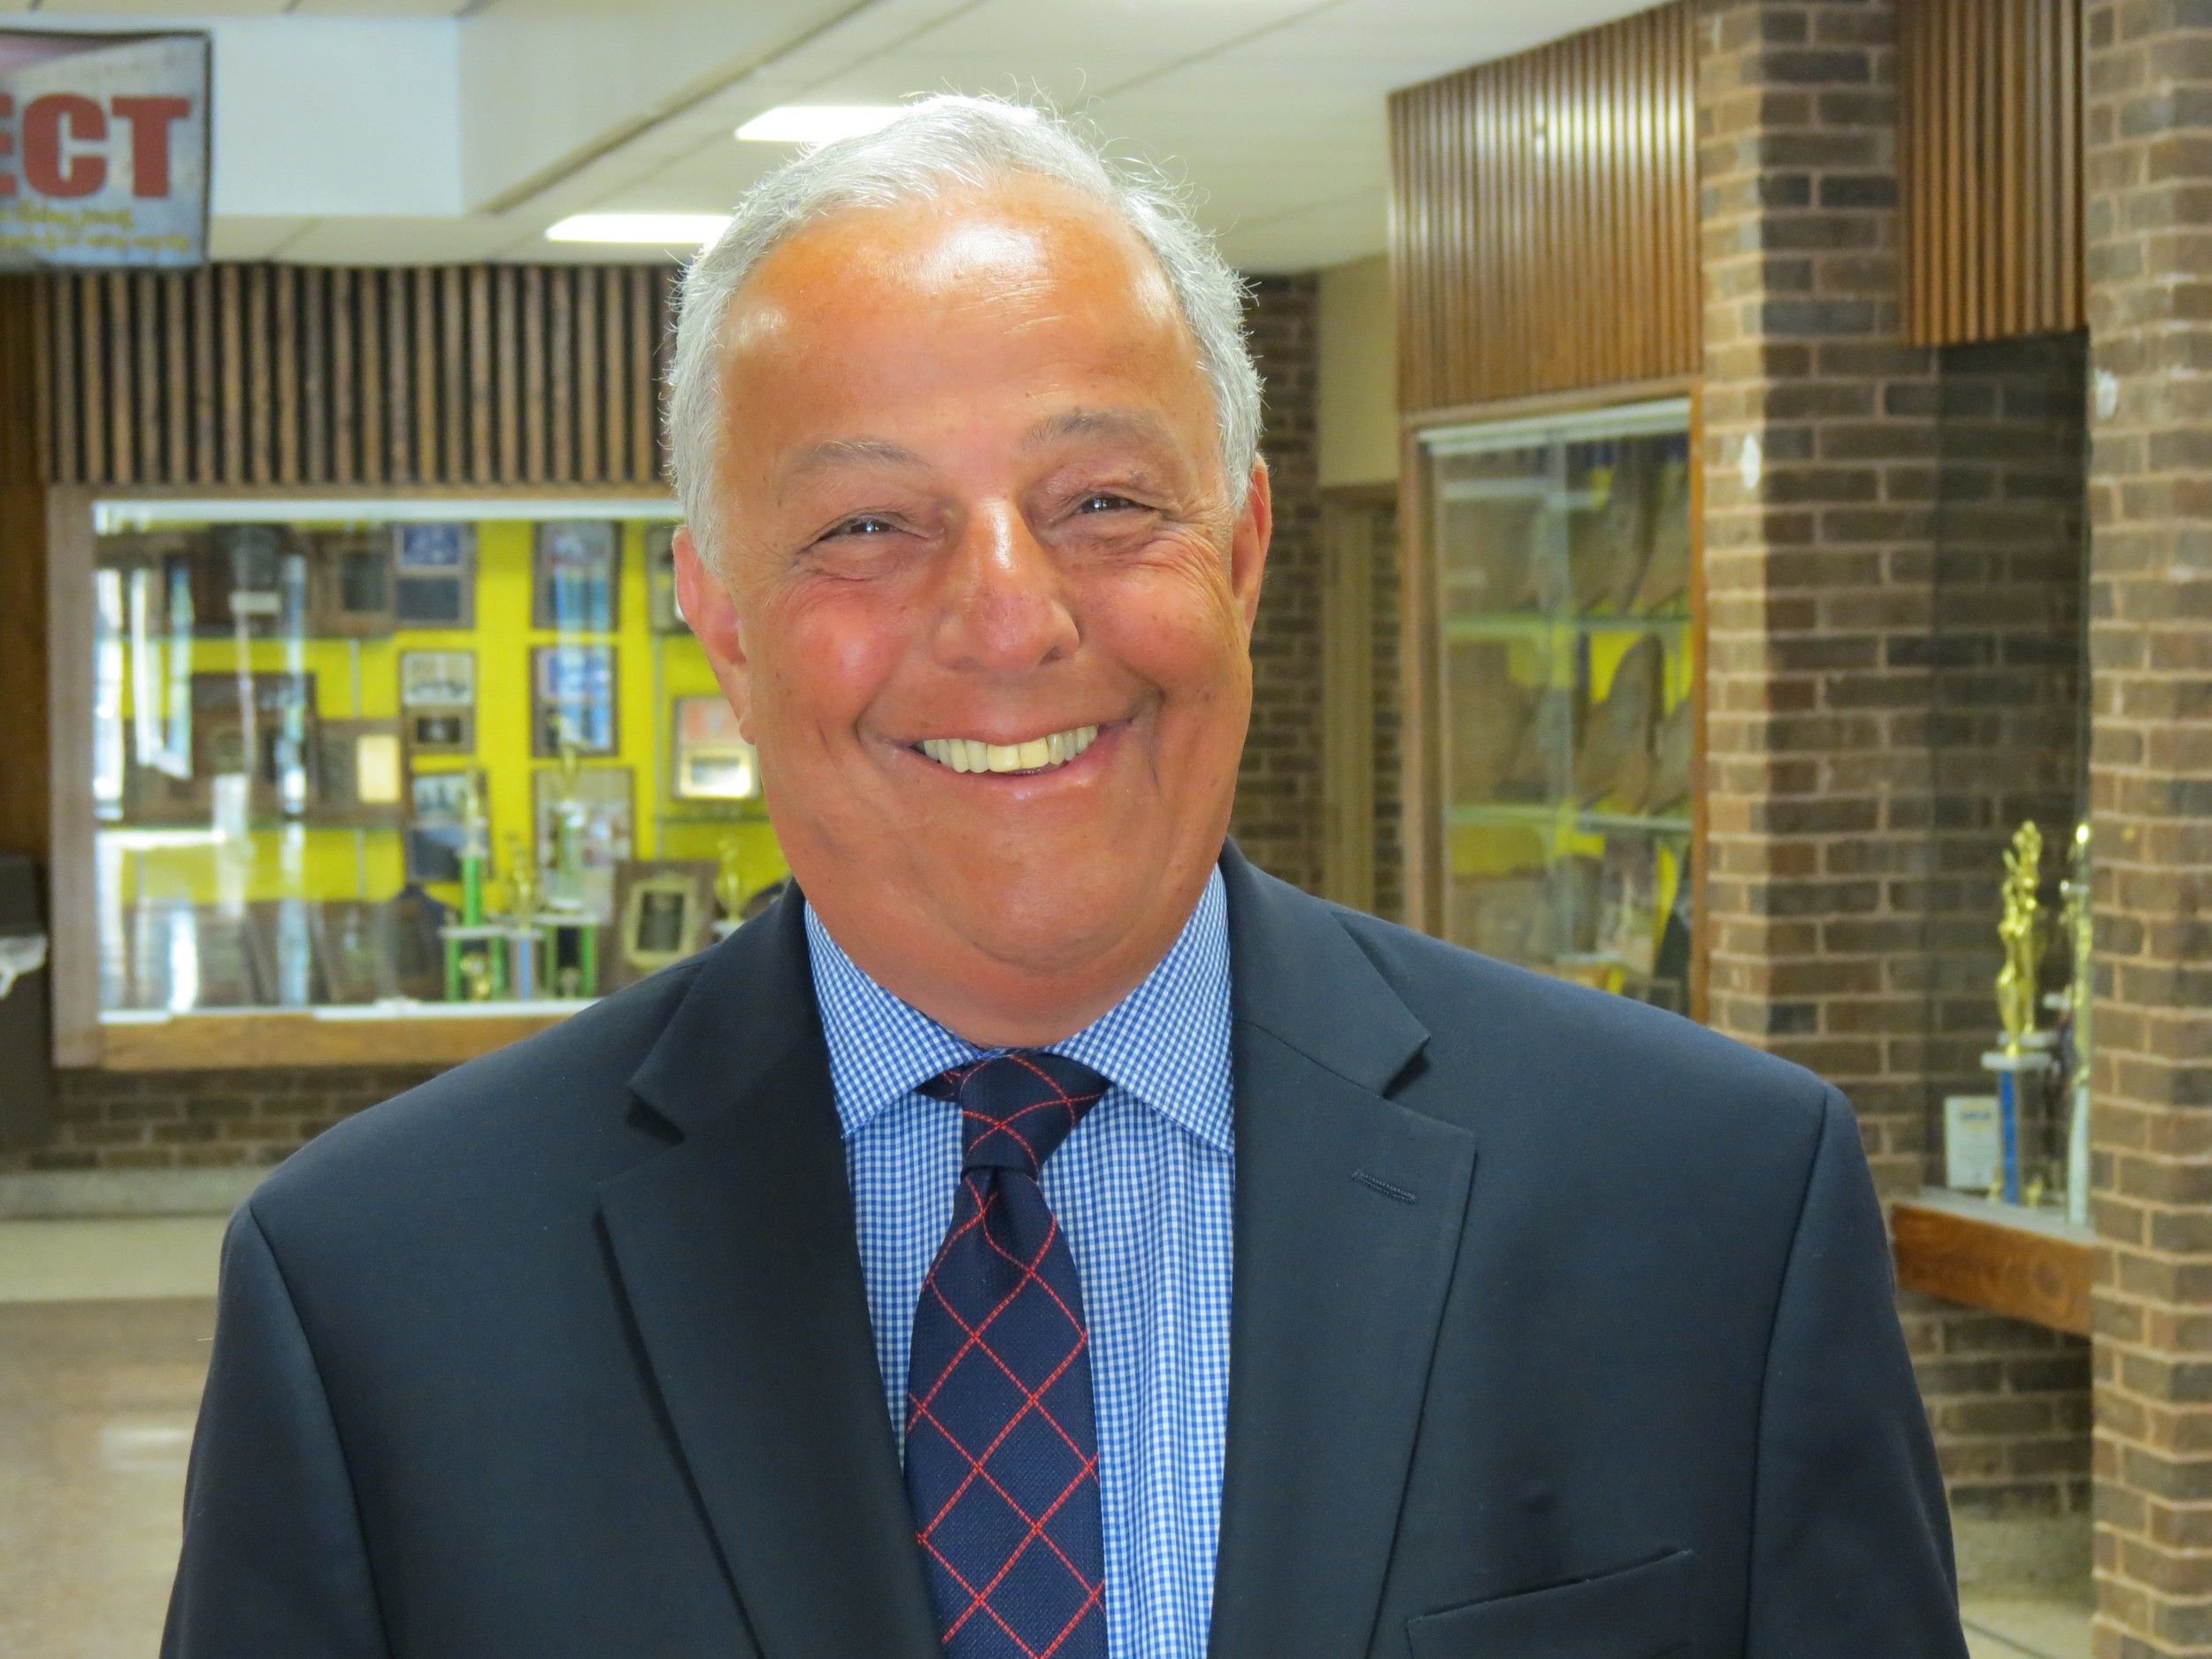 Neil Lederer was named the interim principal of East Rockaway Junior-Senior High School on Aug. 8. He has been a teacher and administrator in several districts for more than 50 years.